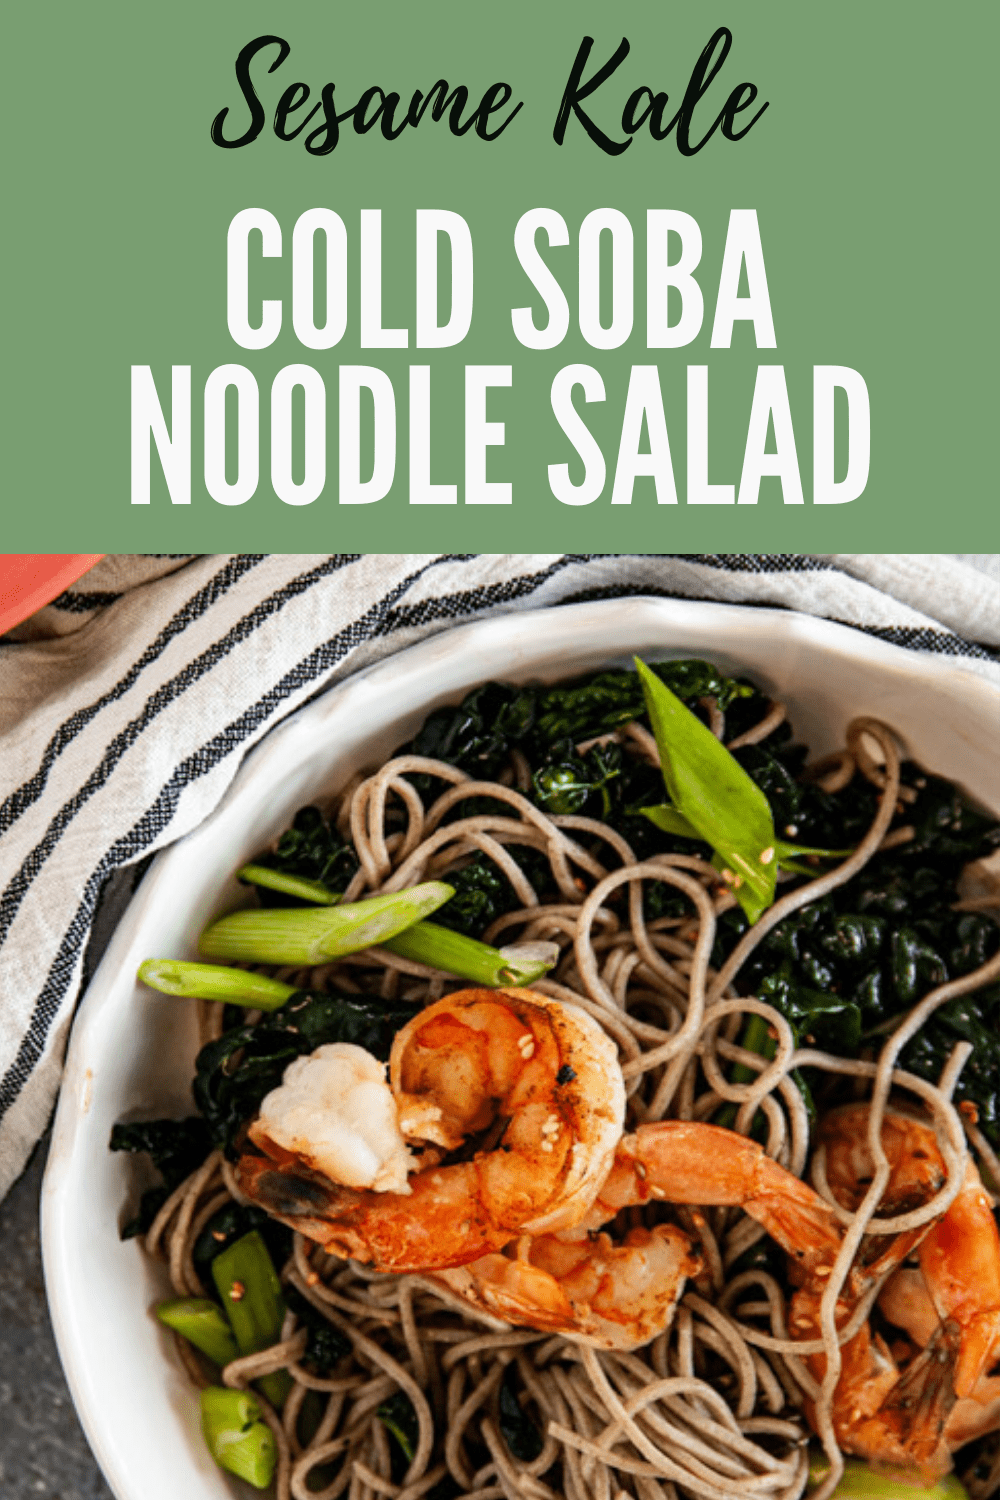 This Sesame Kale Cold Soba Noodle Salad is perfect for a hot summer day!